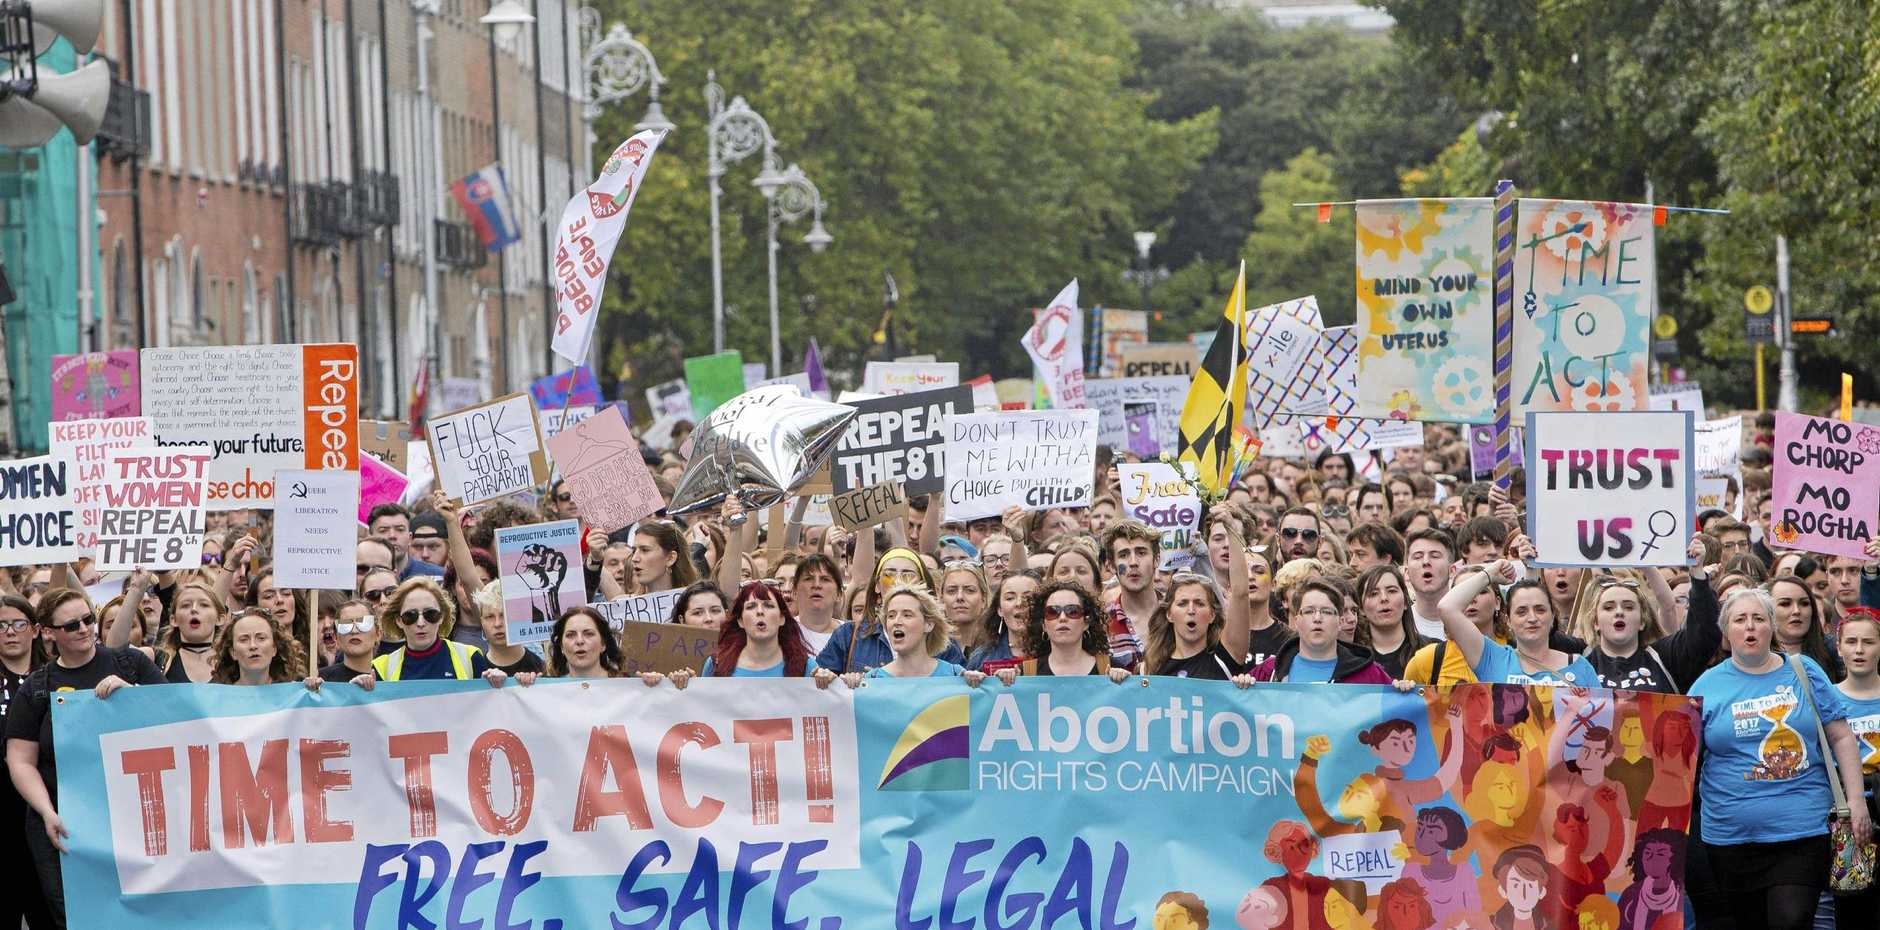 Demonstrators participate at The March for Choice event in Dublin, calling for a change to Ireland's strict abortion laws, in September last year.